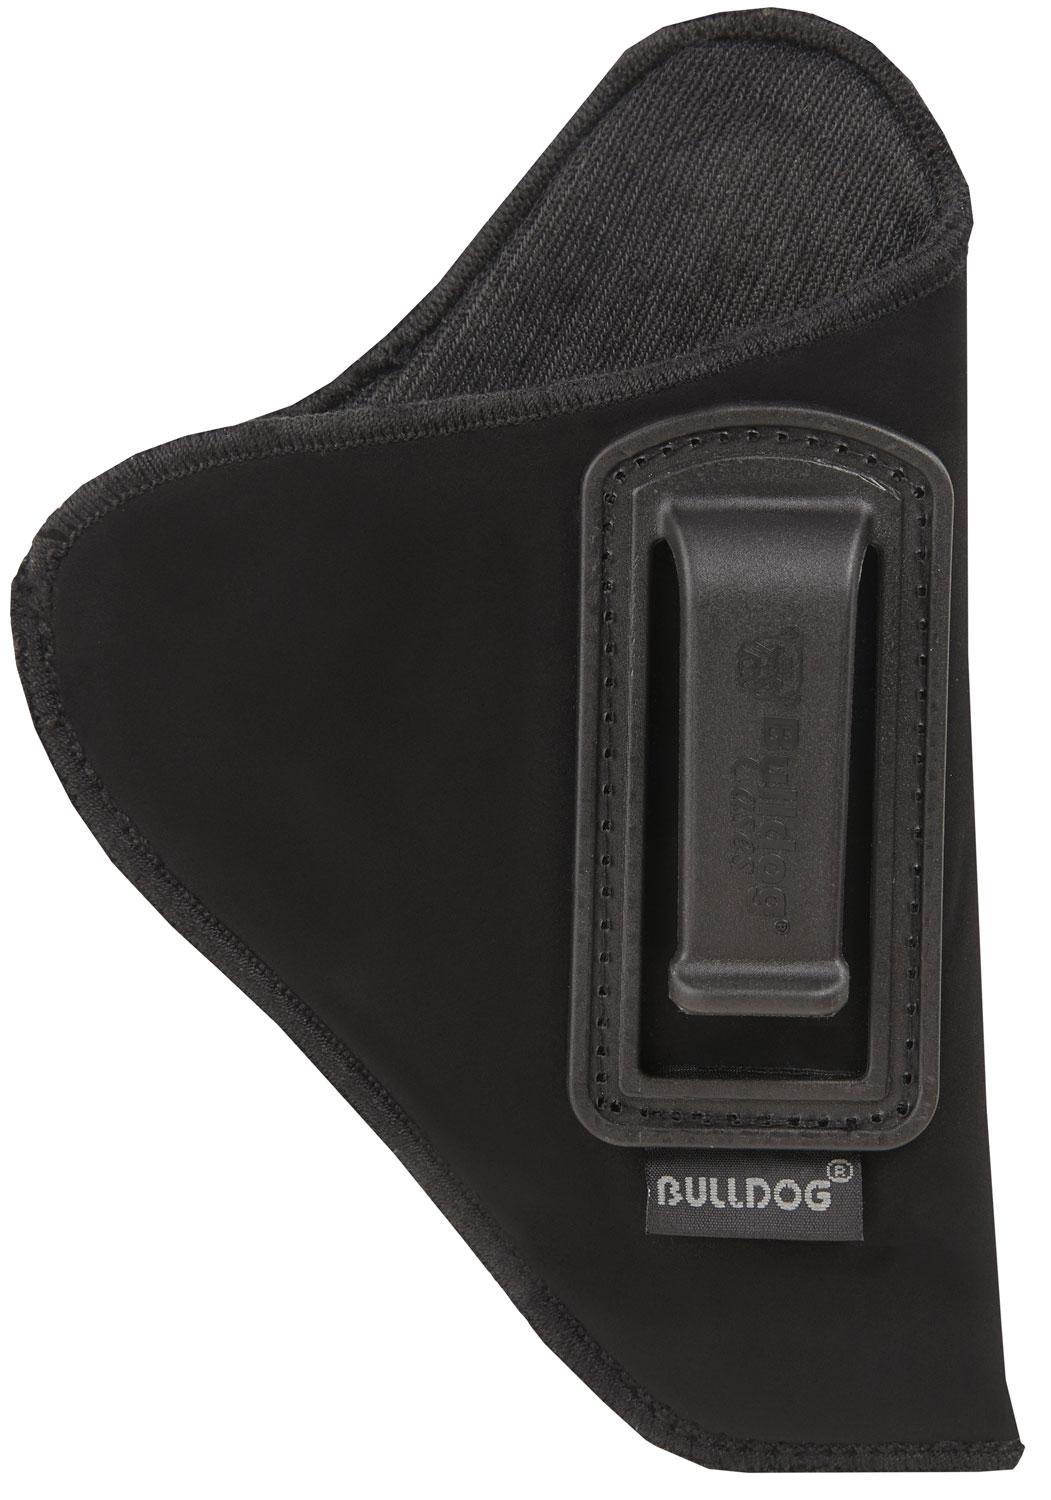 Bulldog Dip- 20 Deluxe Inside Pants Holster Sub Compact 2